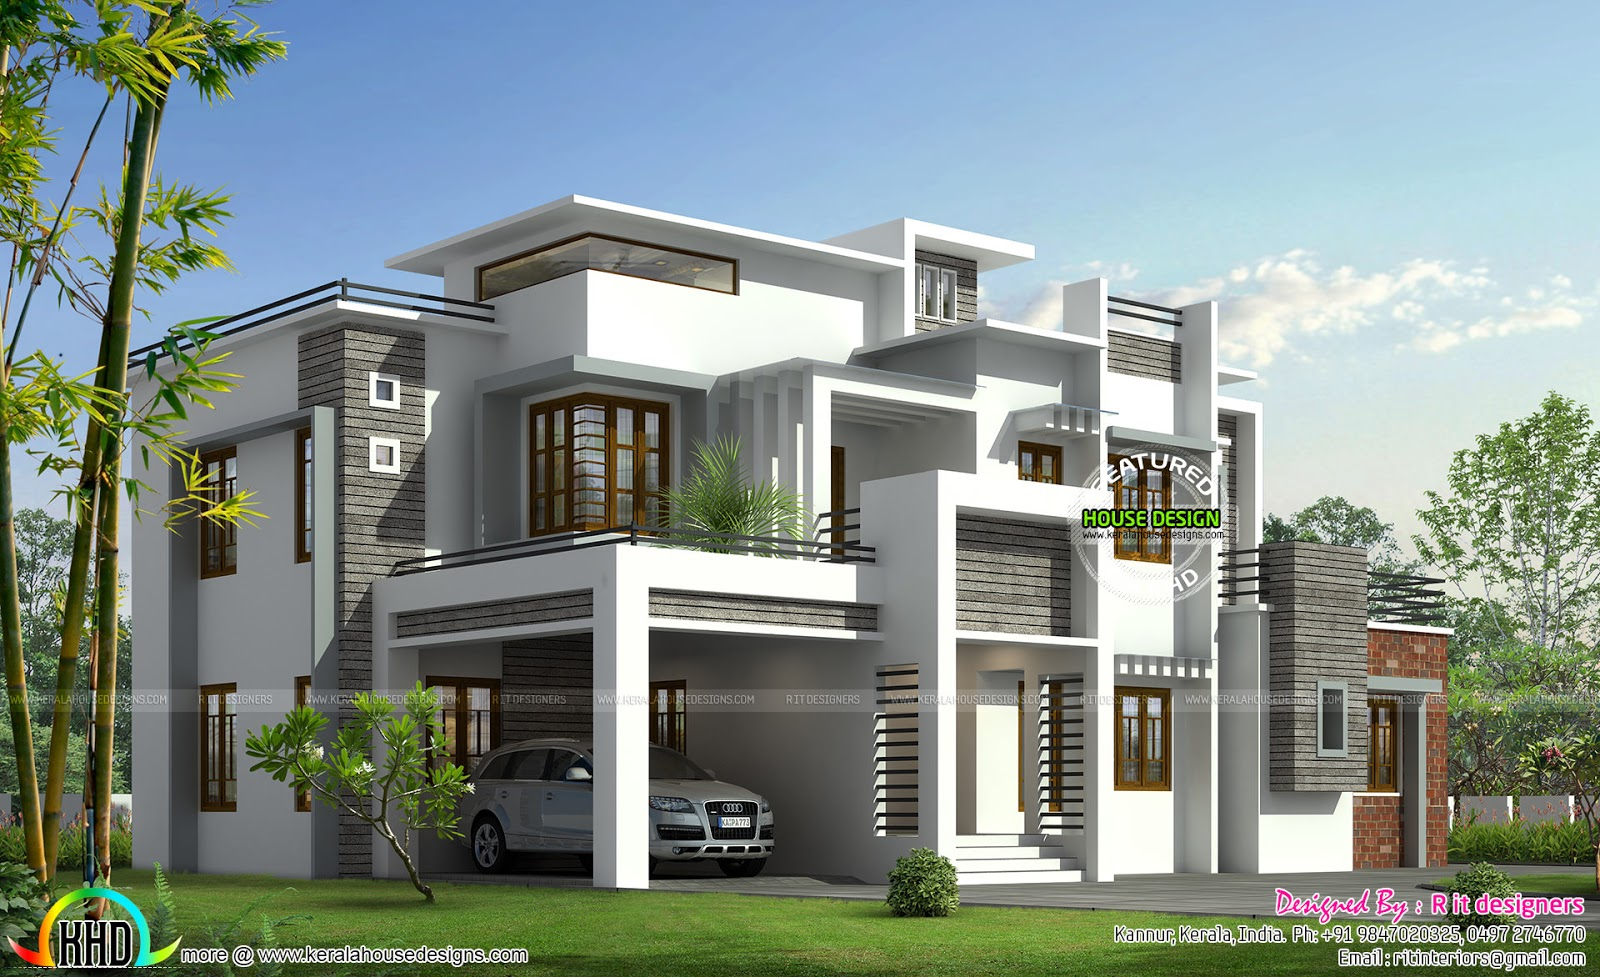 Box model contemporary house kerala home design and for Modern style house plans